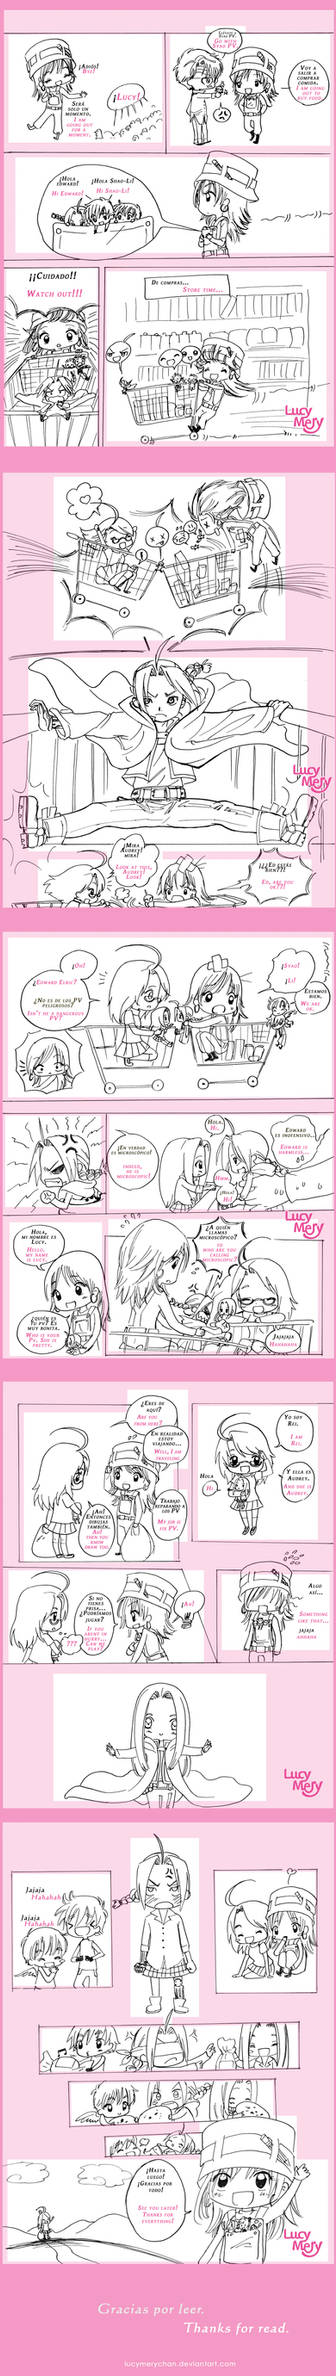 chibi_Lucy_store time